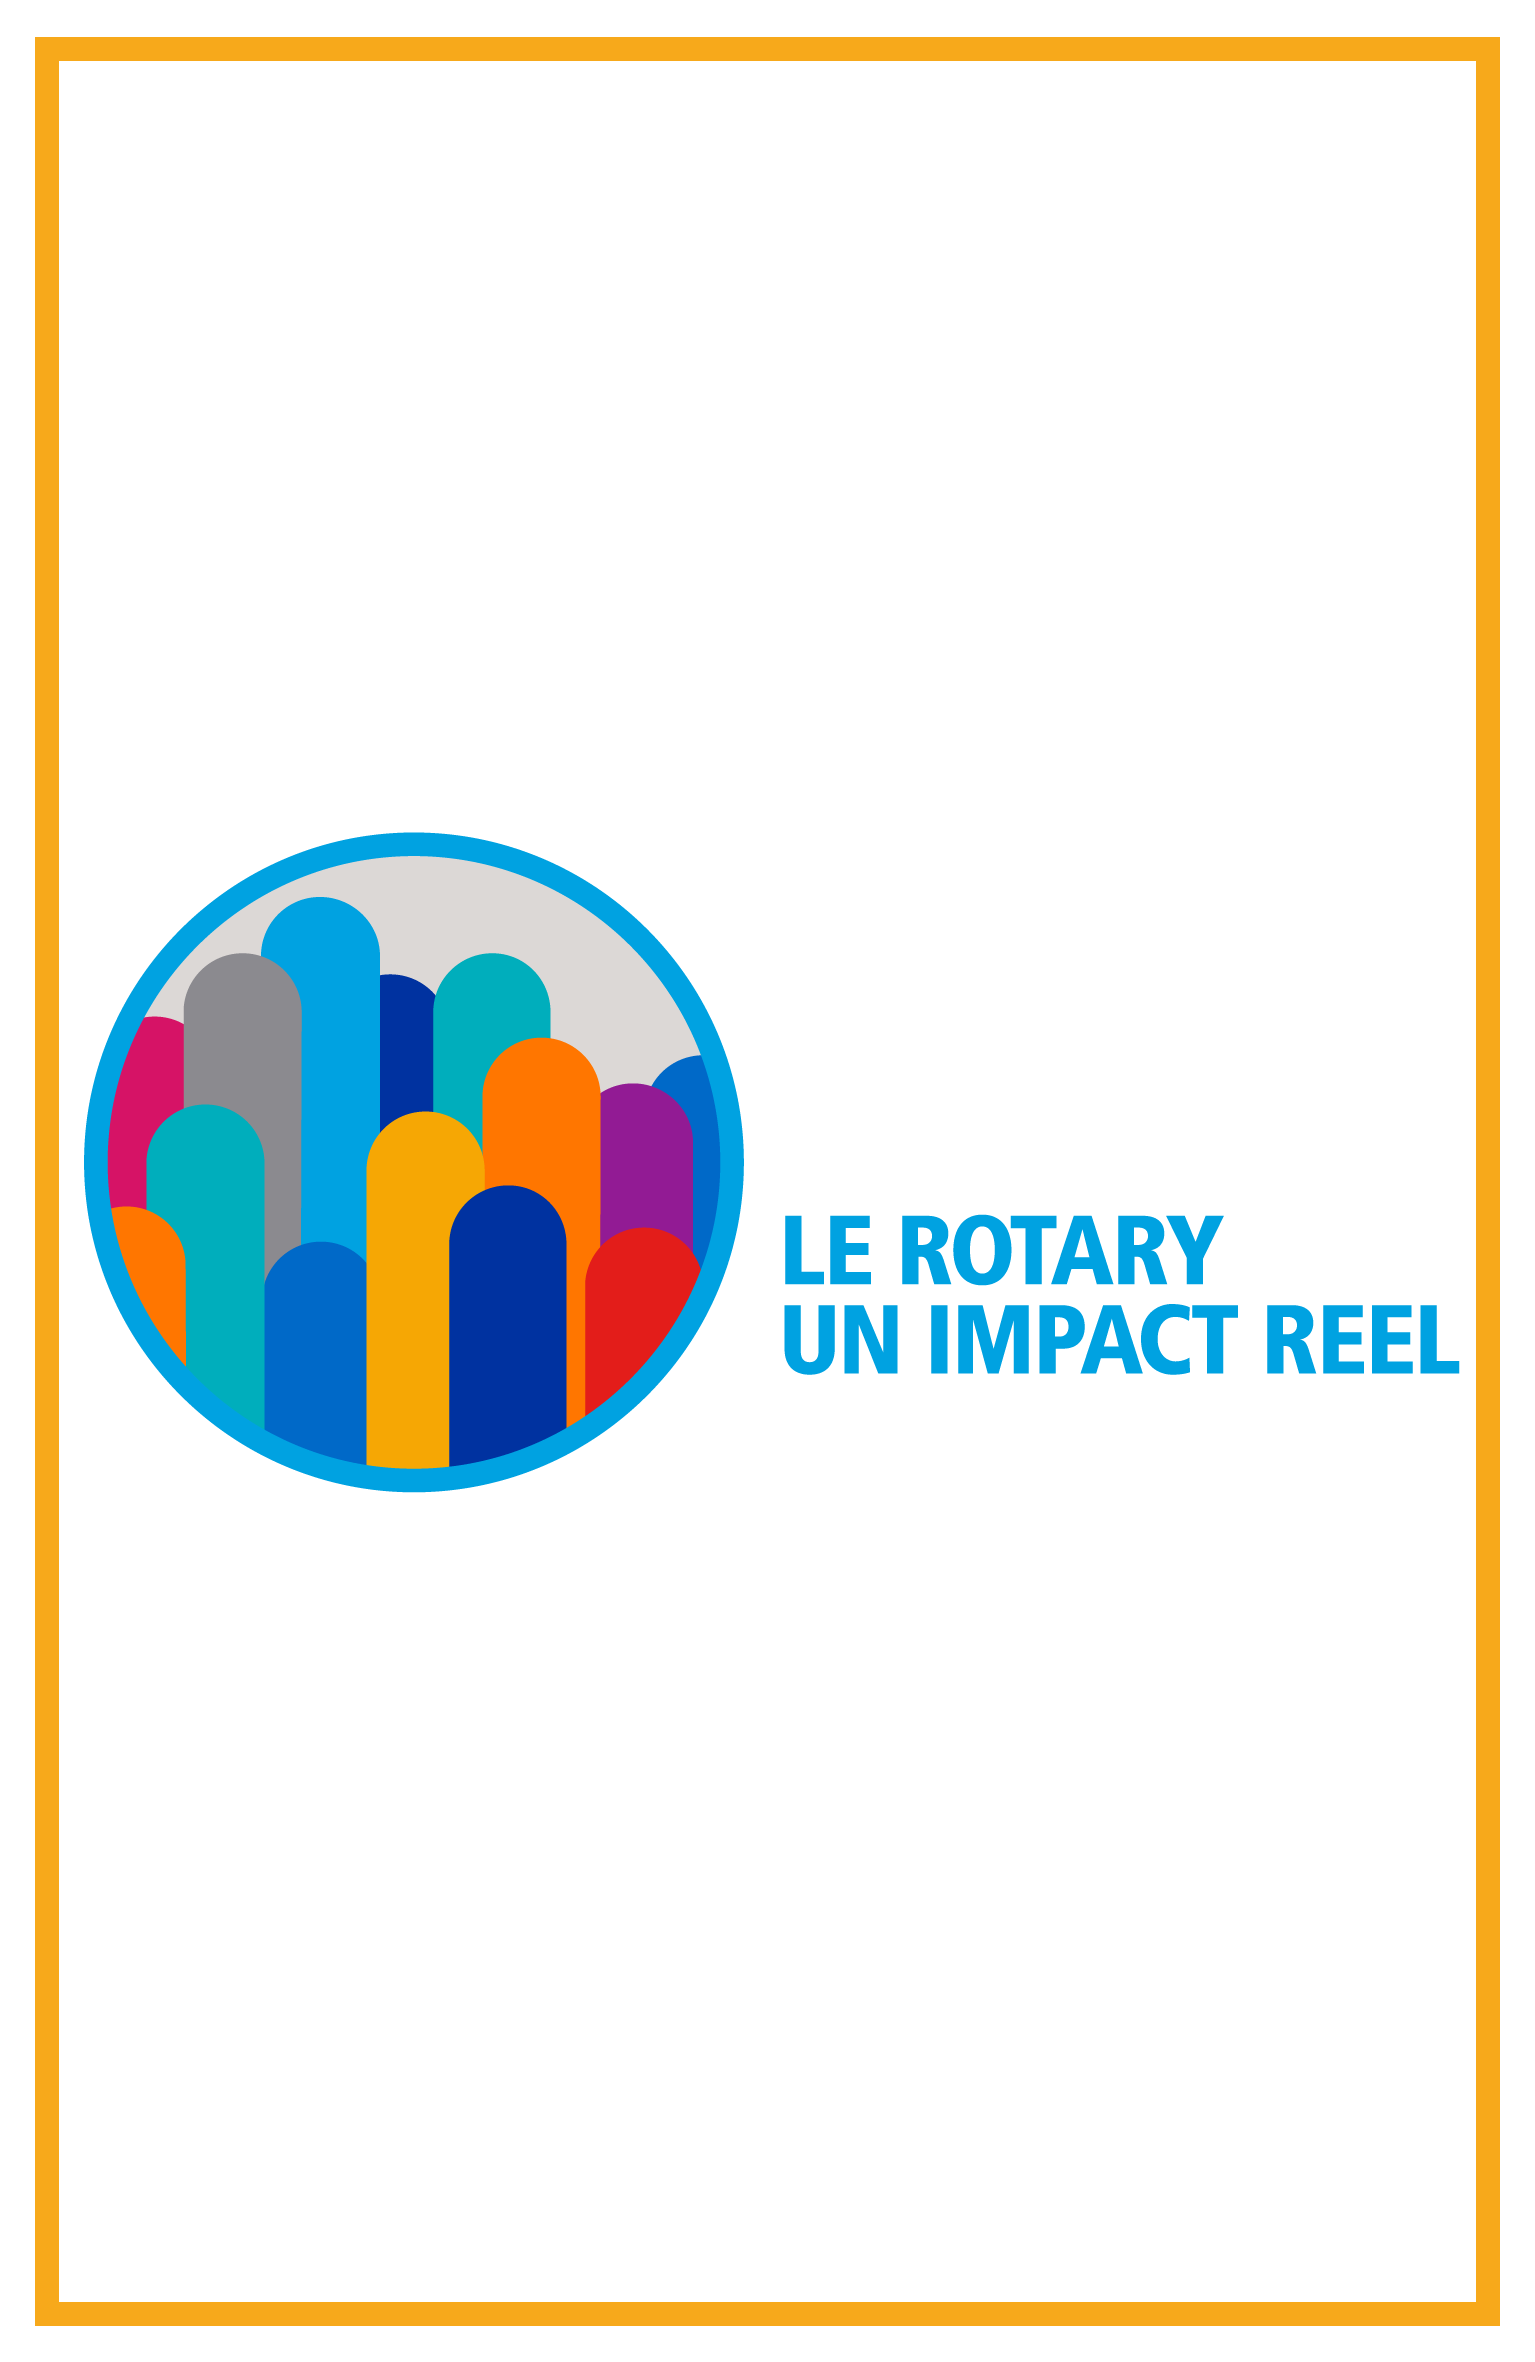 logo-theme-rotary-president-international-ian-riseley